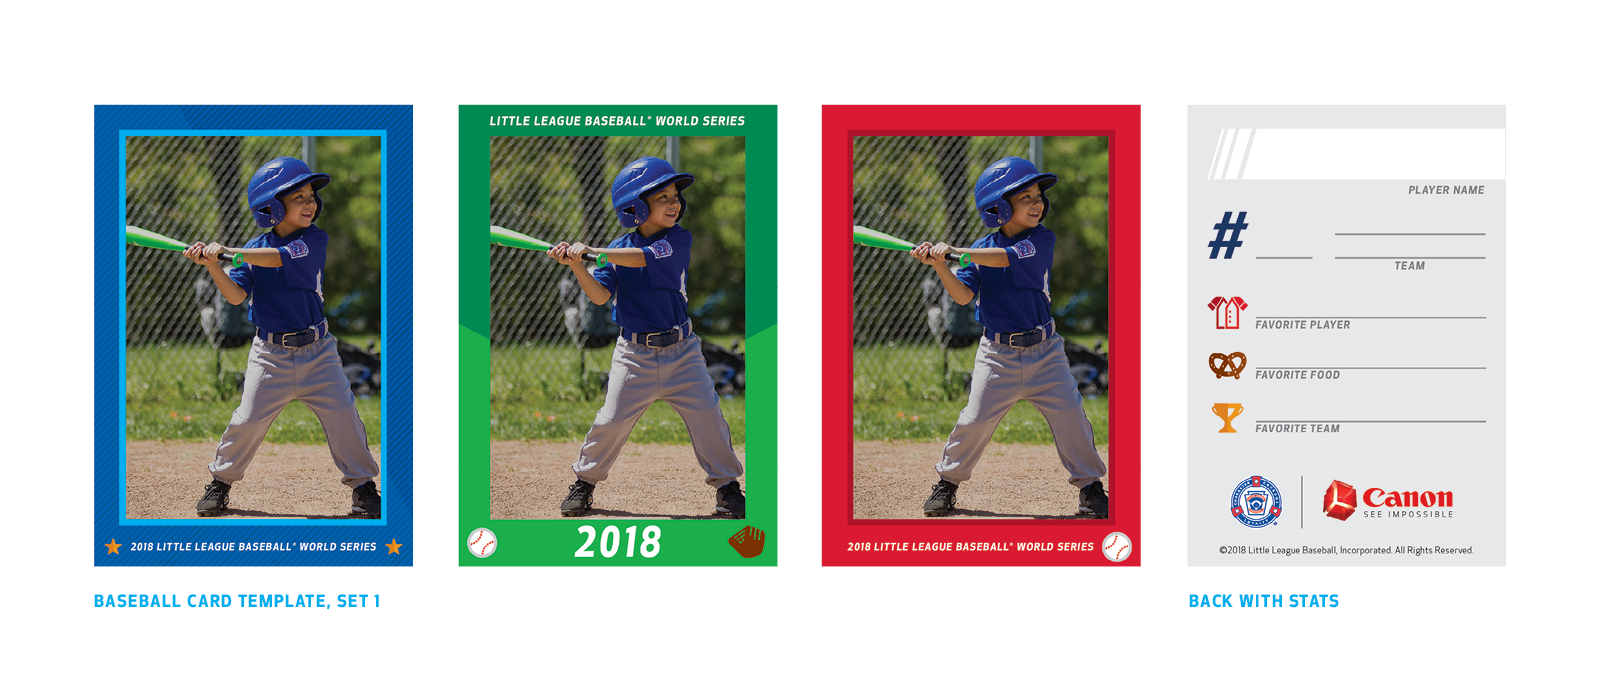 Canon_LLWS_Creative Overview_Williamsport_WAVE 2_2018-07-3012.png